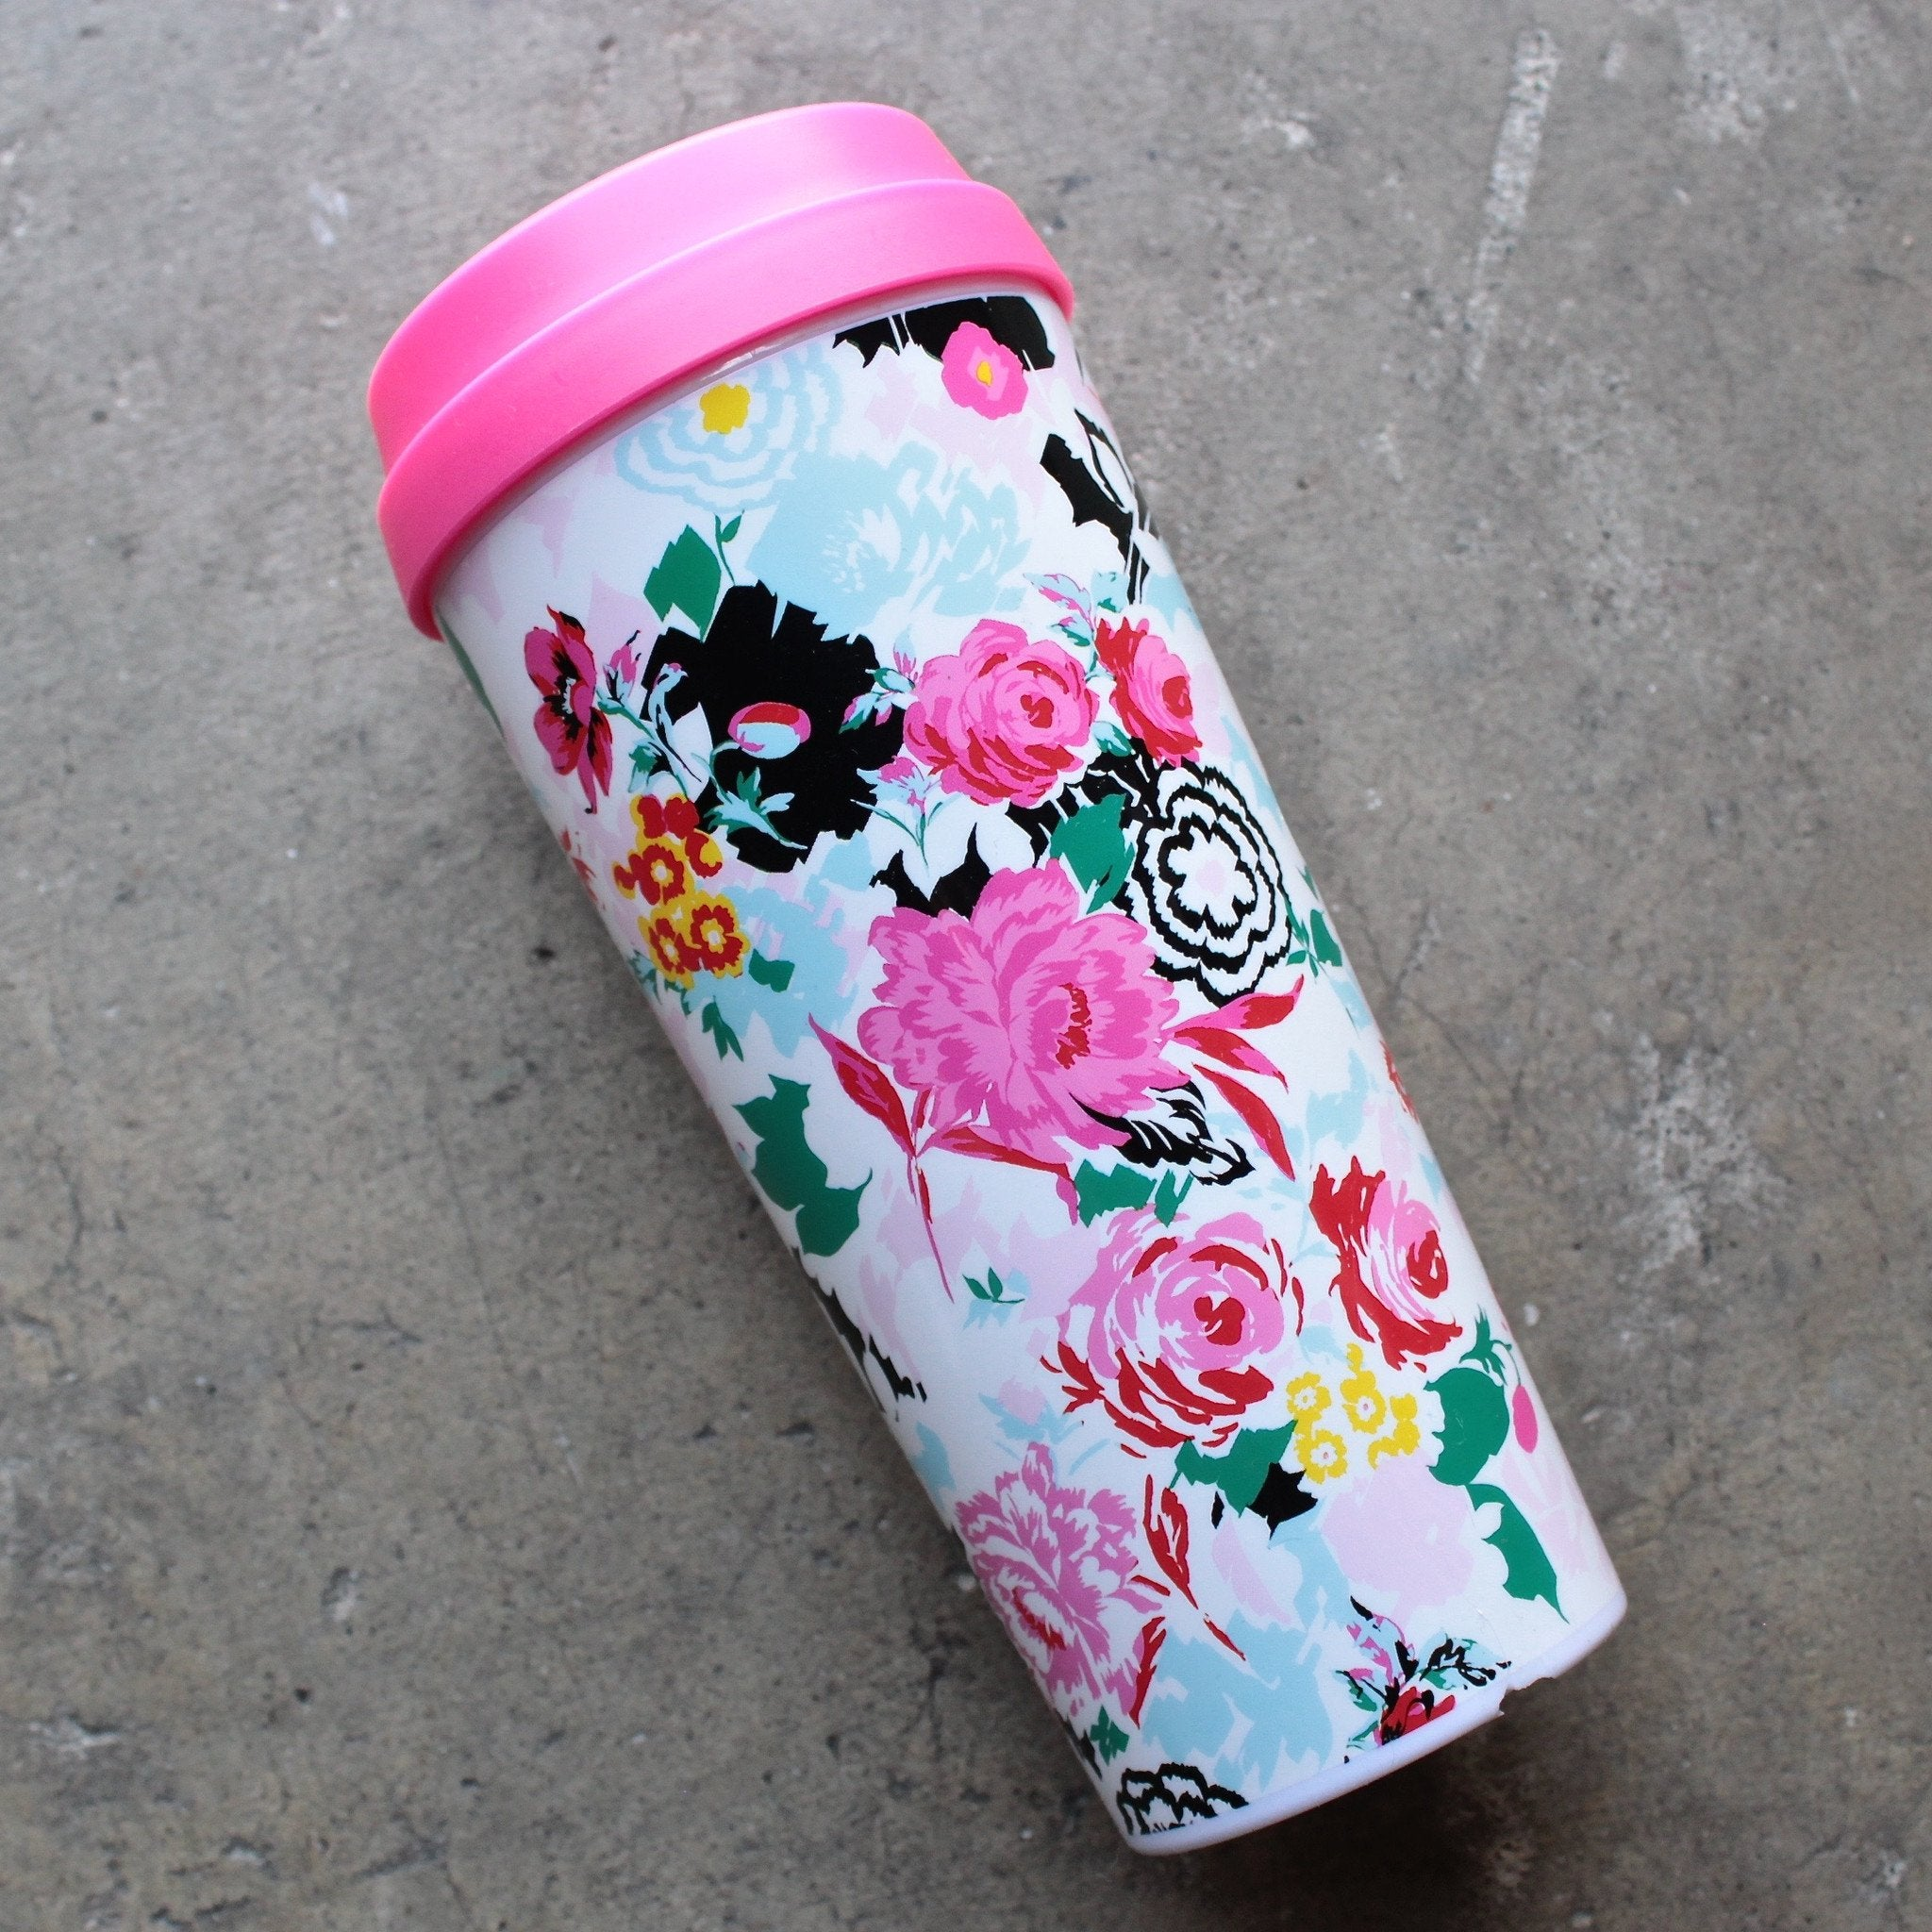 ban.do 'hot stuff' thermal travel mug - florabunda - shophearts - 1